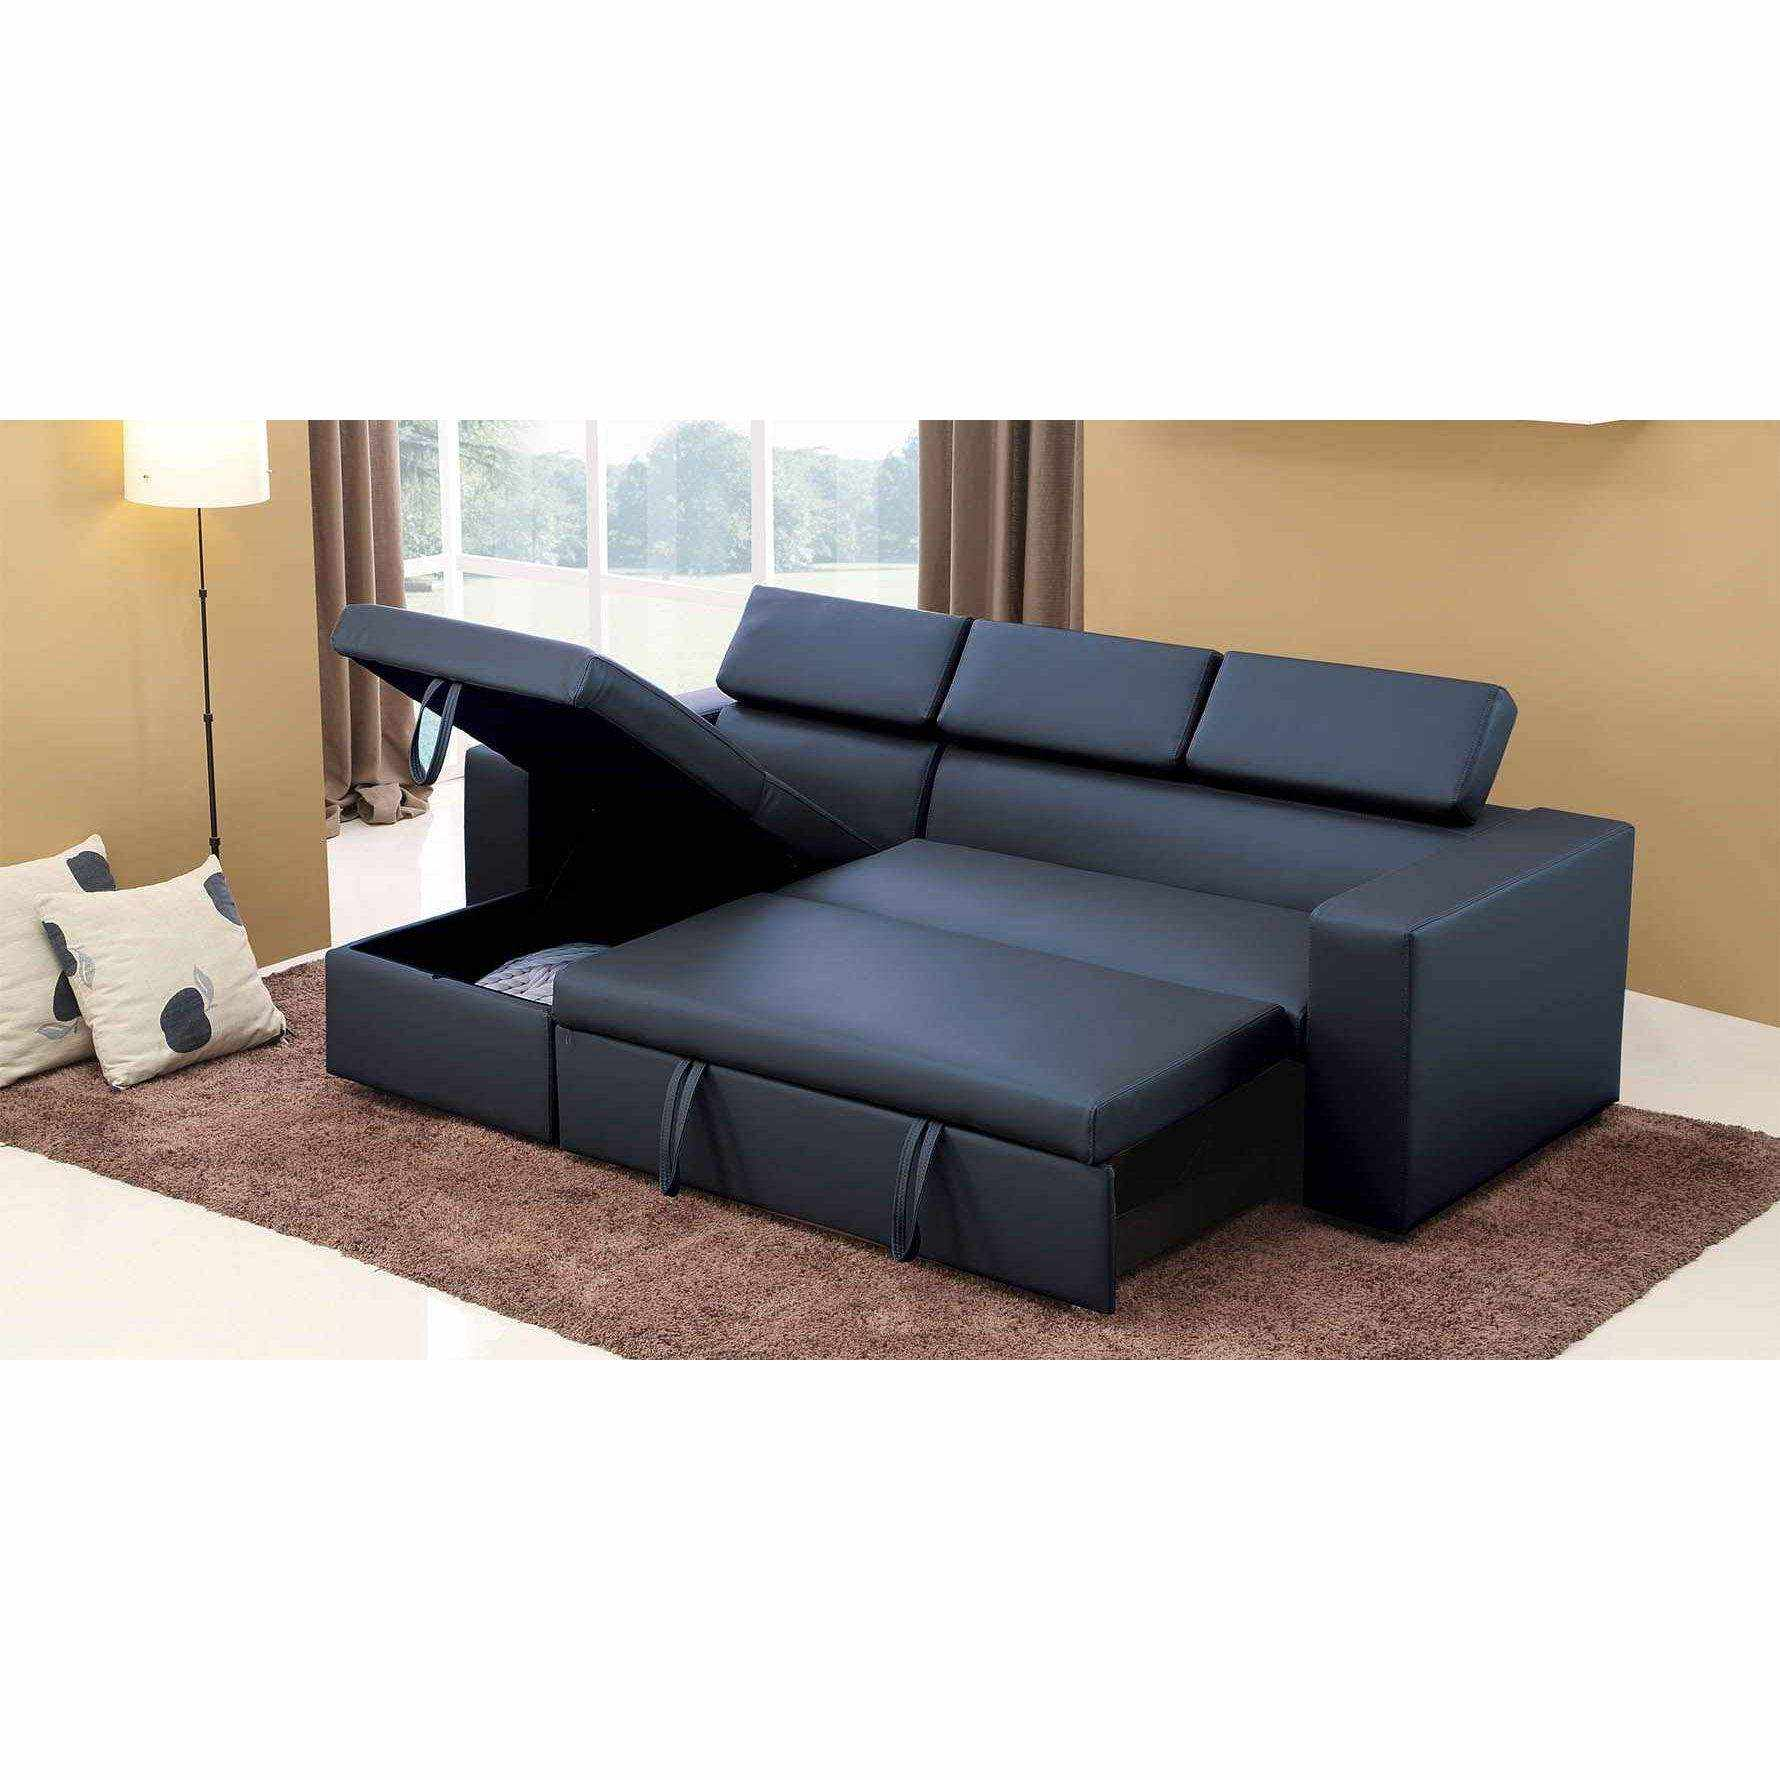 Deco in paris canape d angle convertible modulable noir for Canape banquette convertible